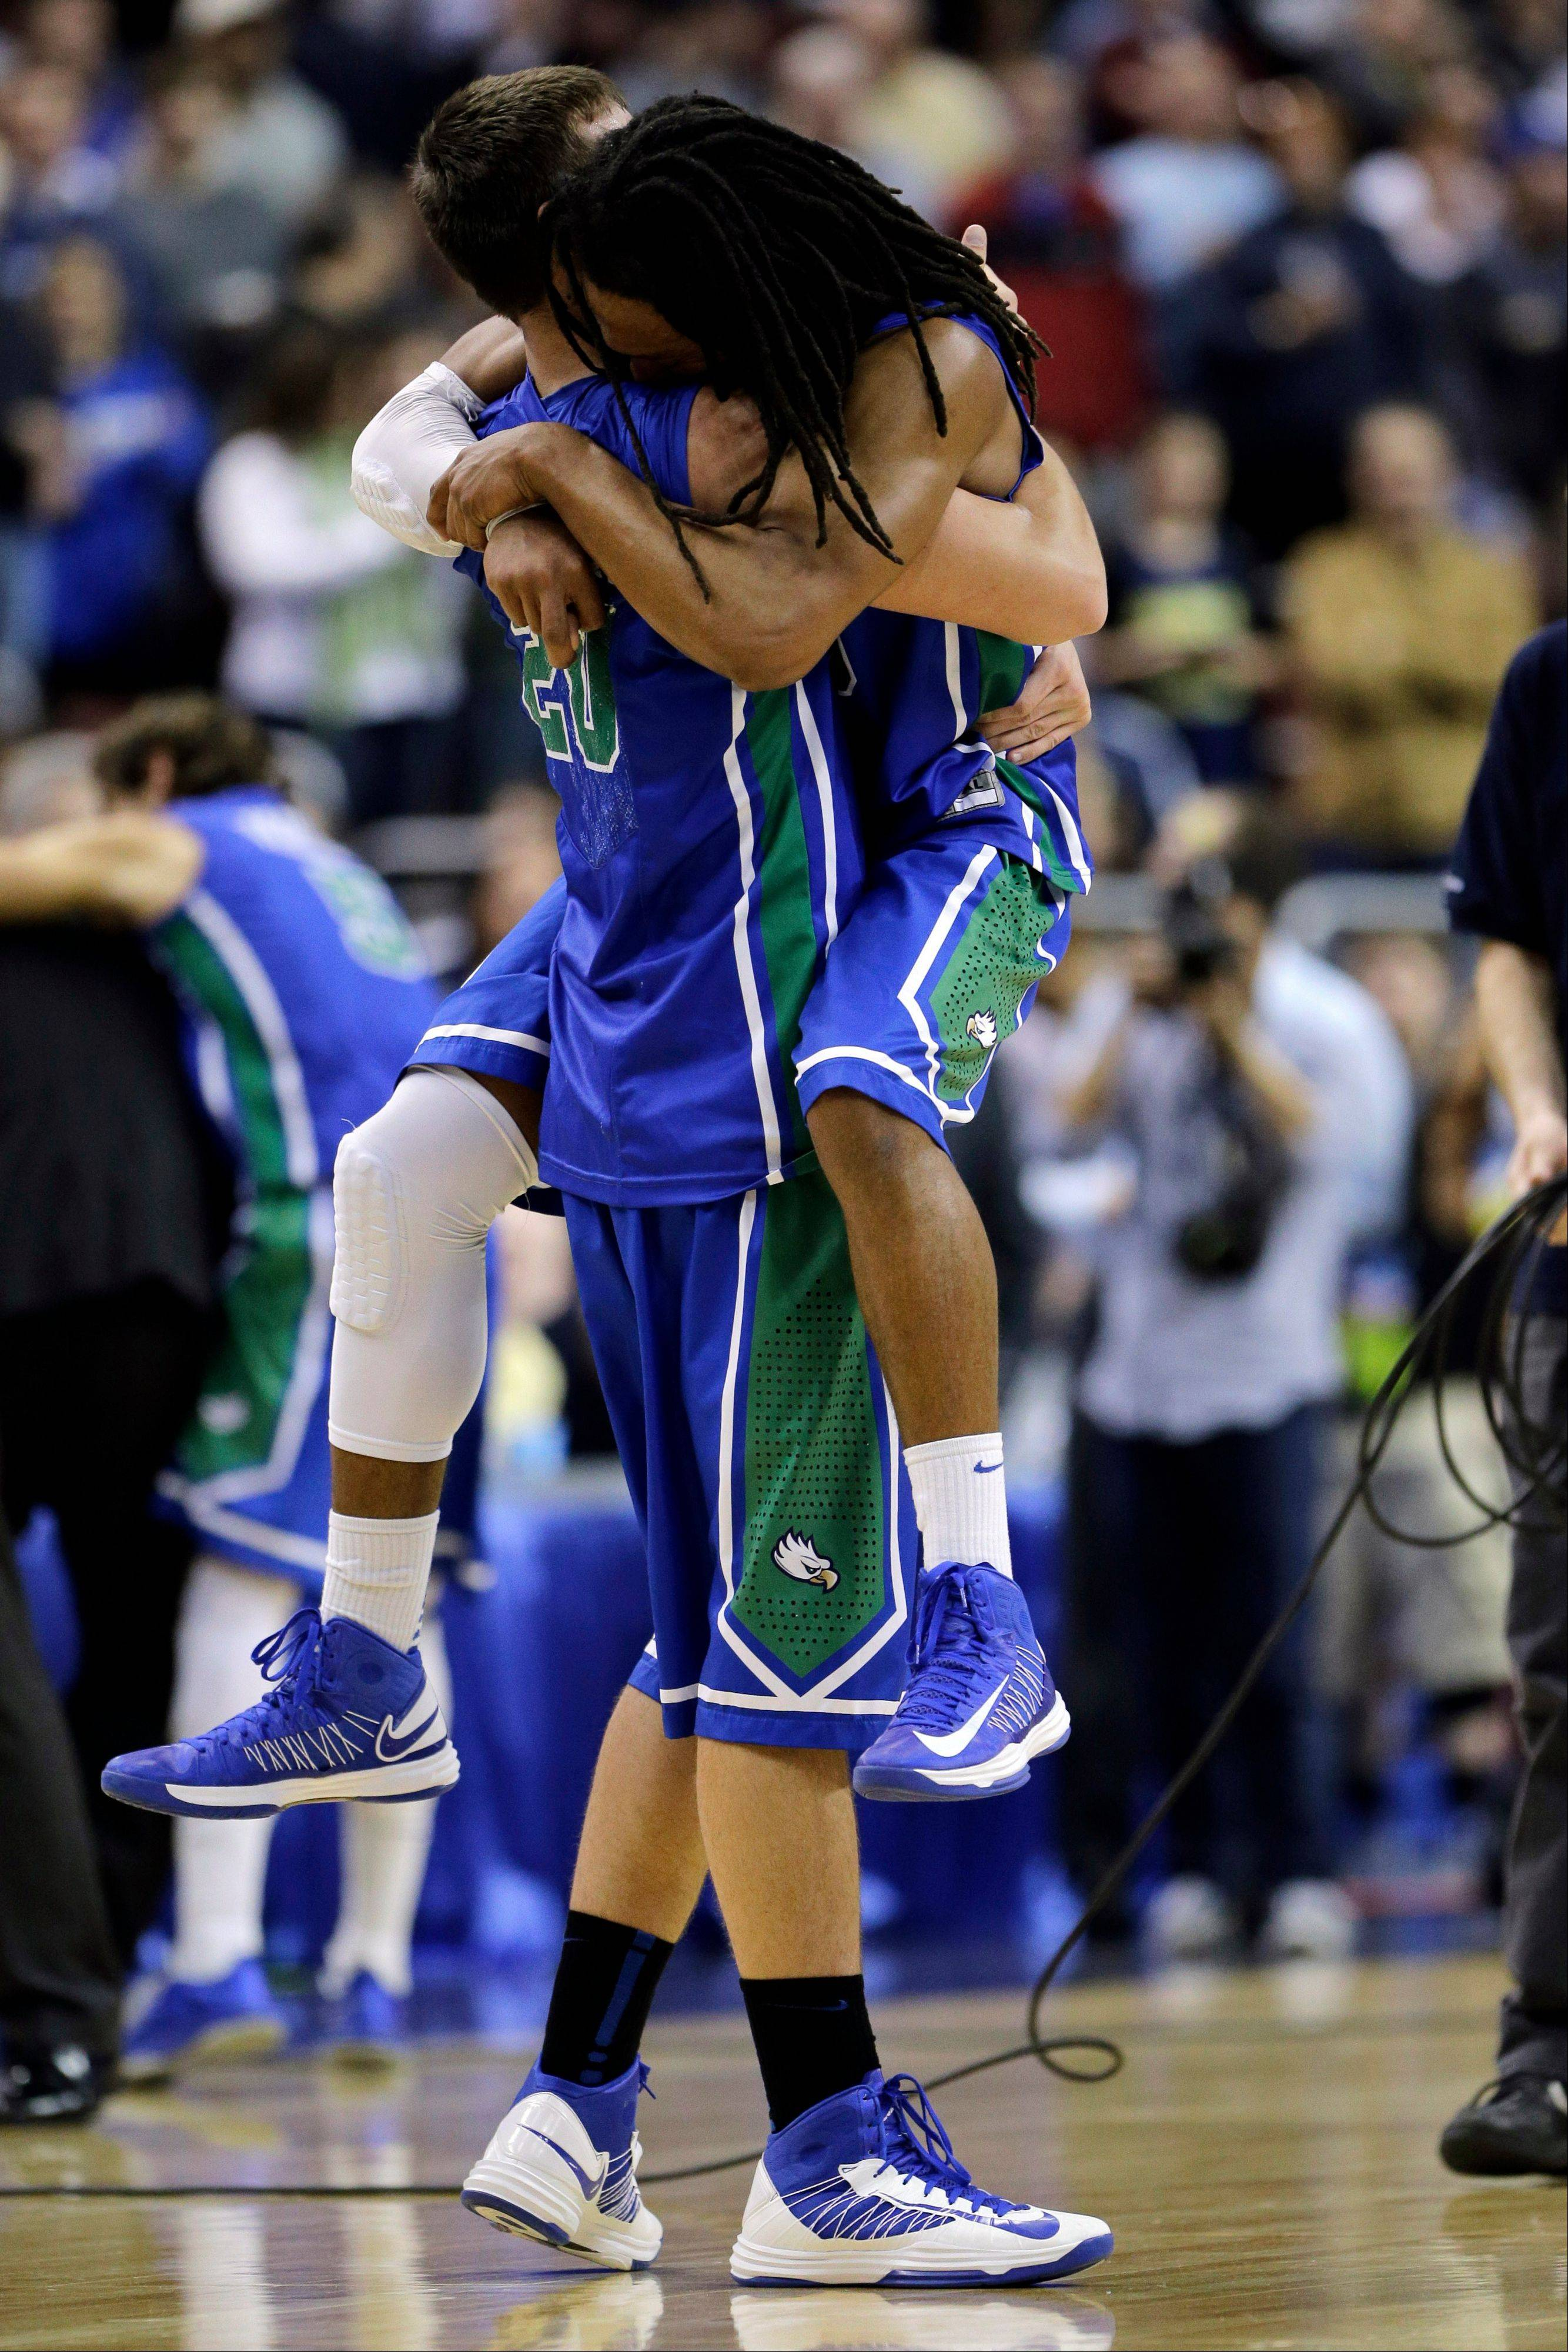 No. 15 seed Florida Gulf Coast advances to Sweet 16